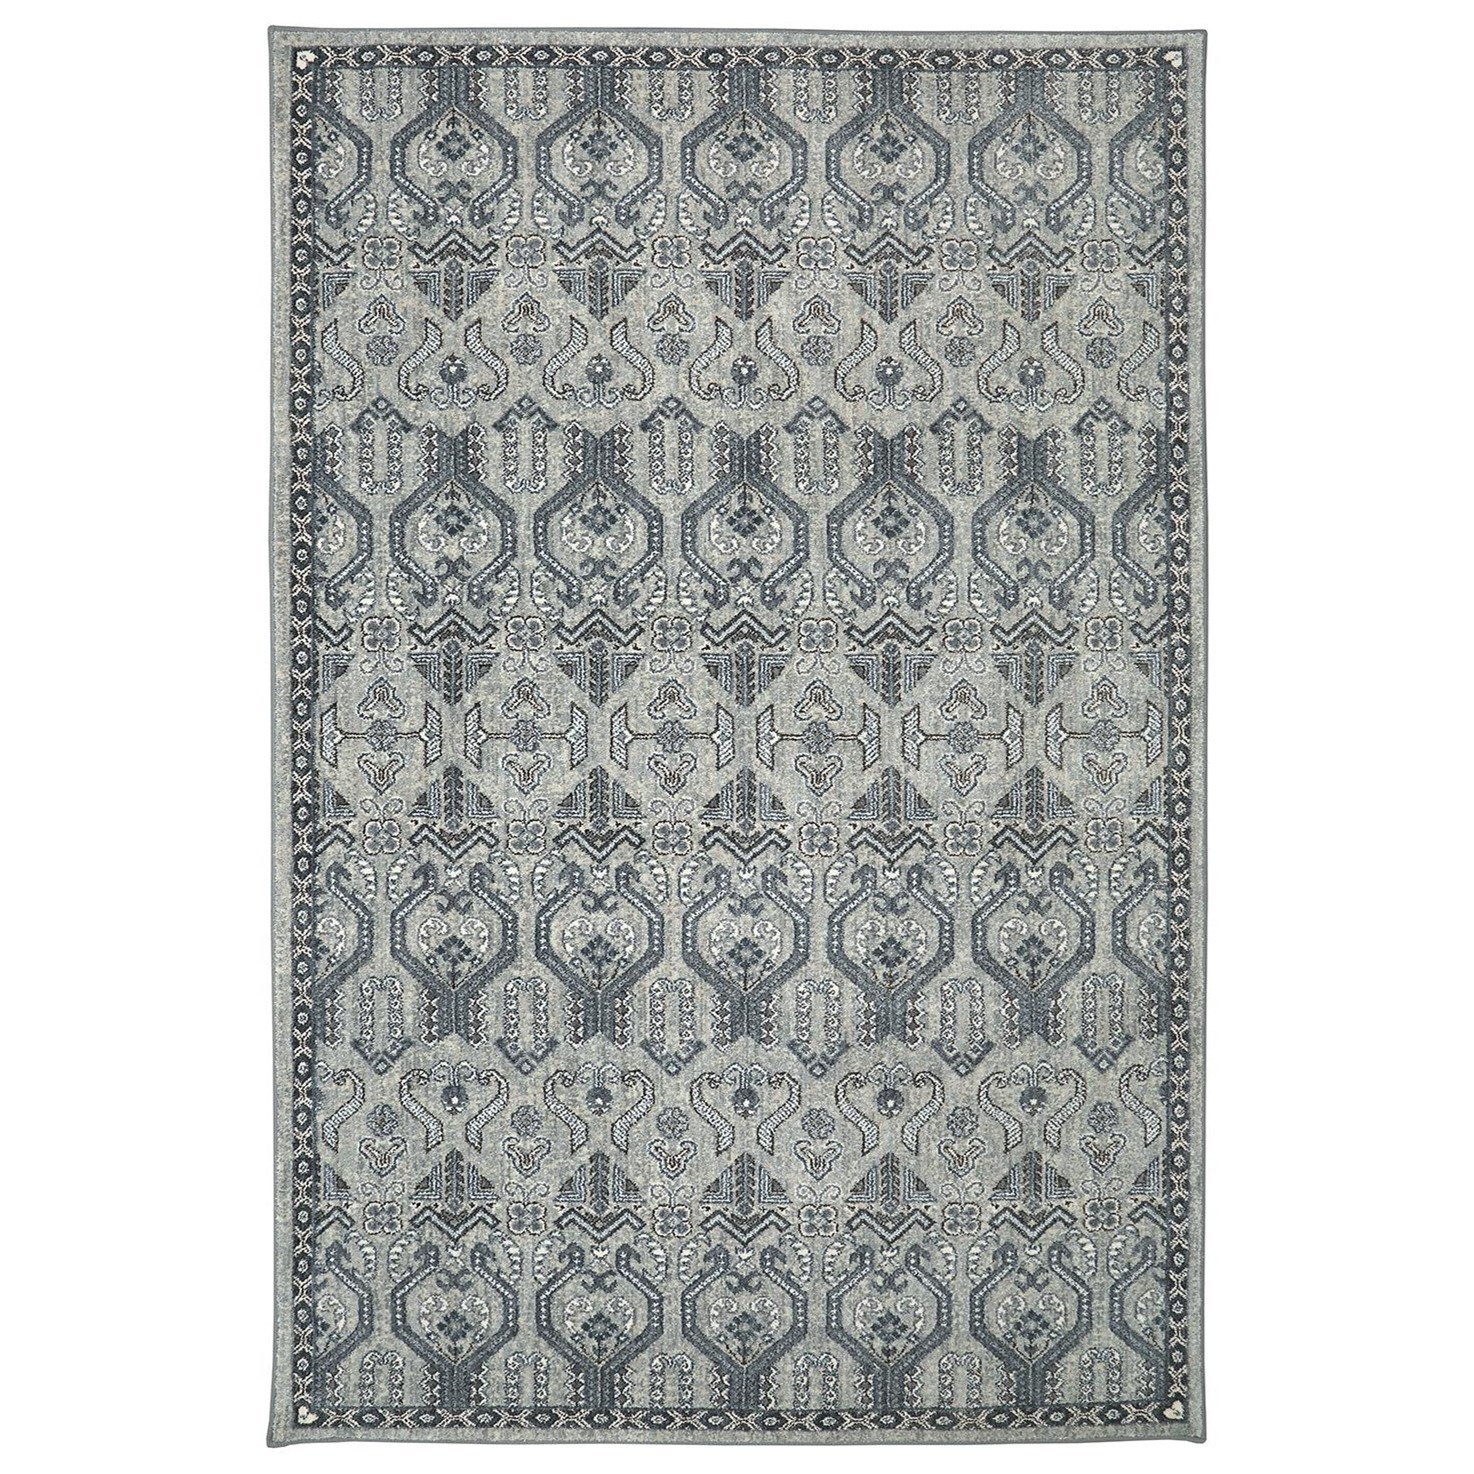 Karastan Rugs Euphoria 9'6x12'11 Castine Willow Grey Rug - Item Number: 90646 90075 114155